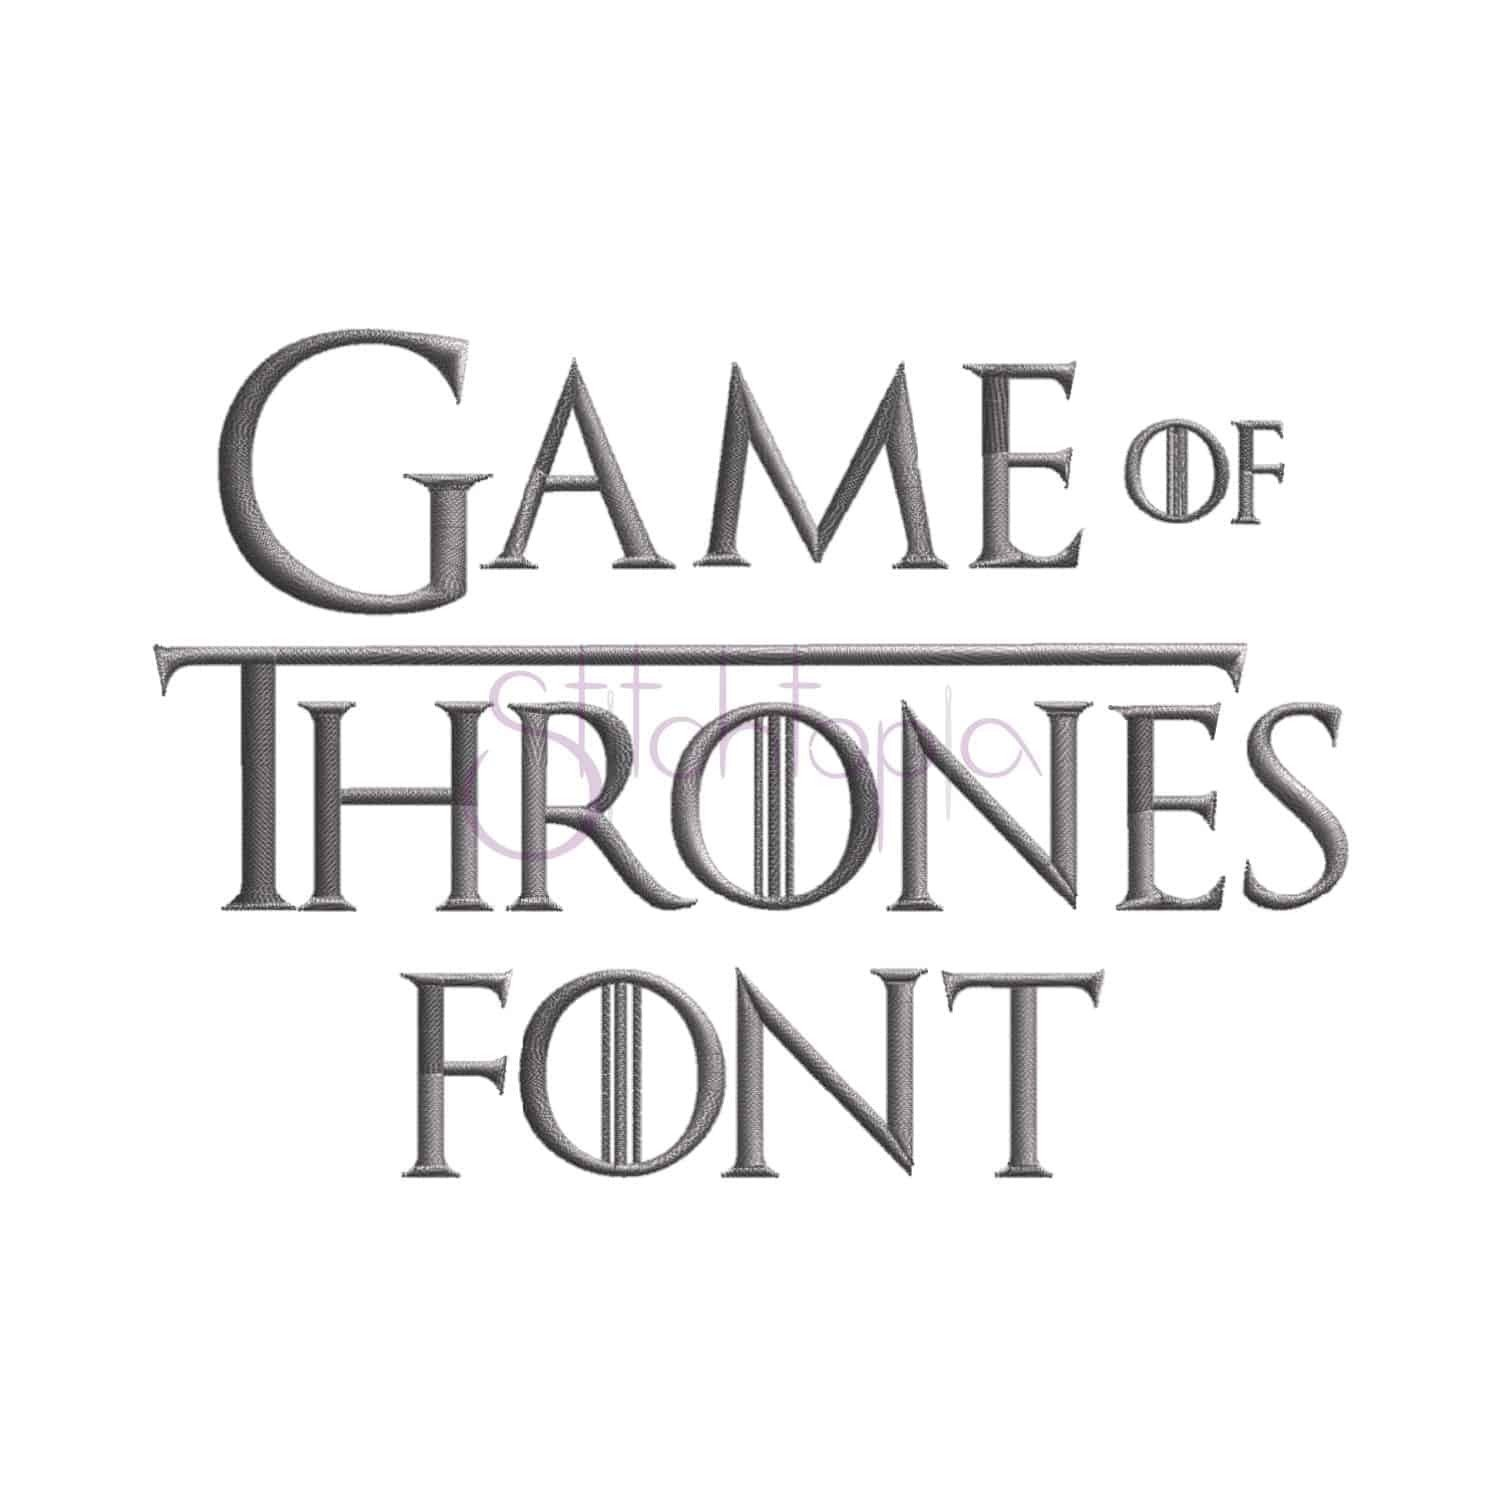 "Game Of Thrones Fonts Game Of Thrones Embroidery Font 75"" 1"" 1 5"" 2"" 2 5"